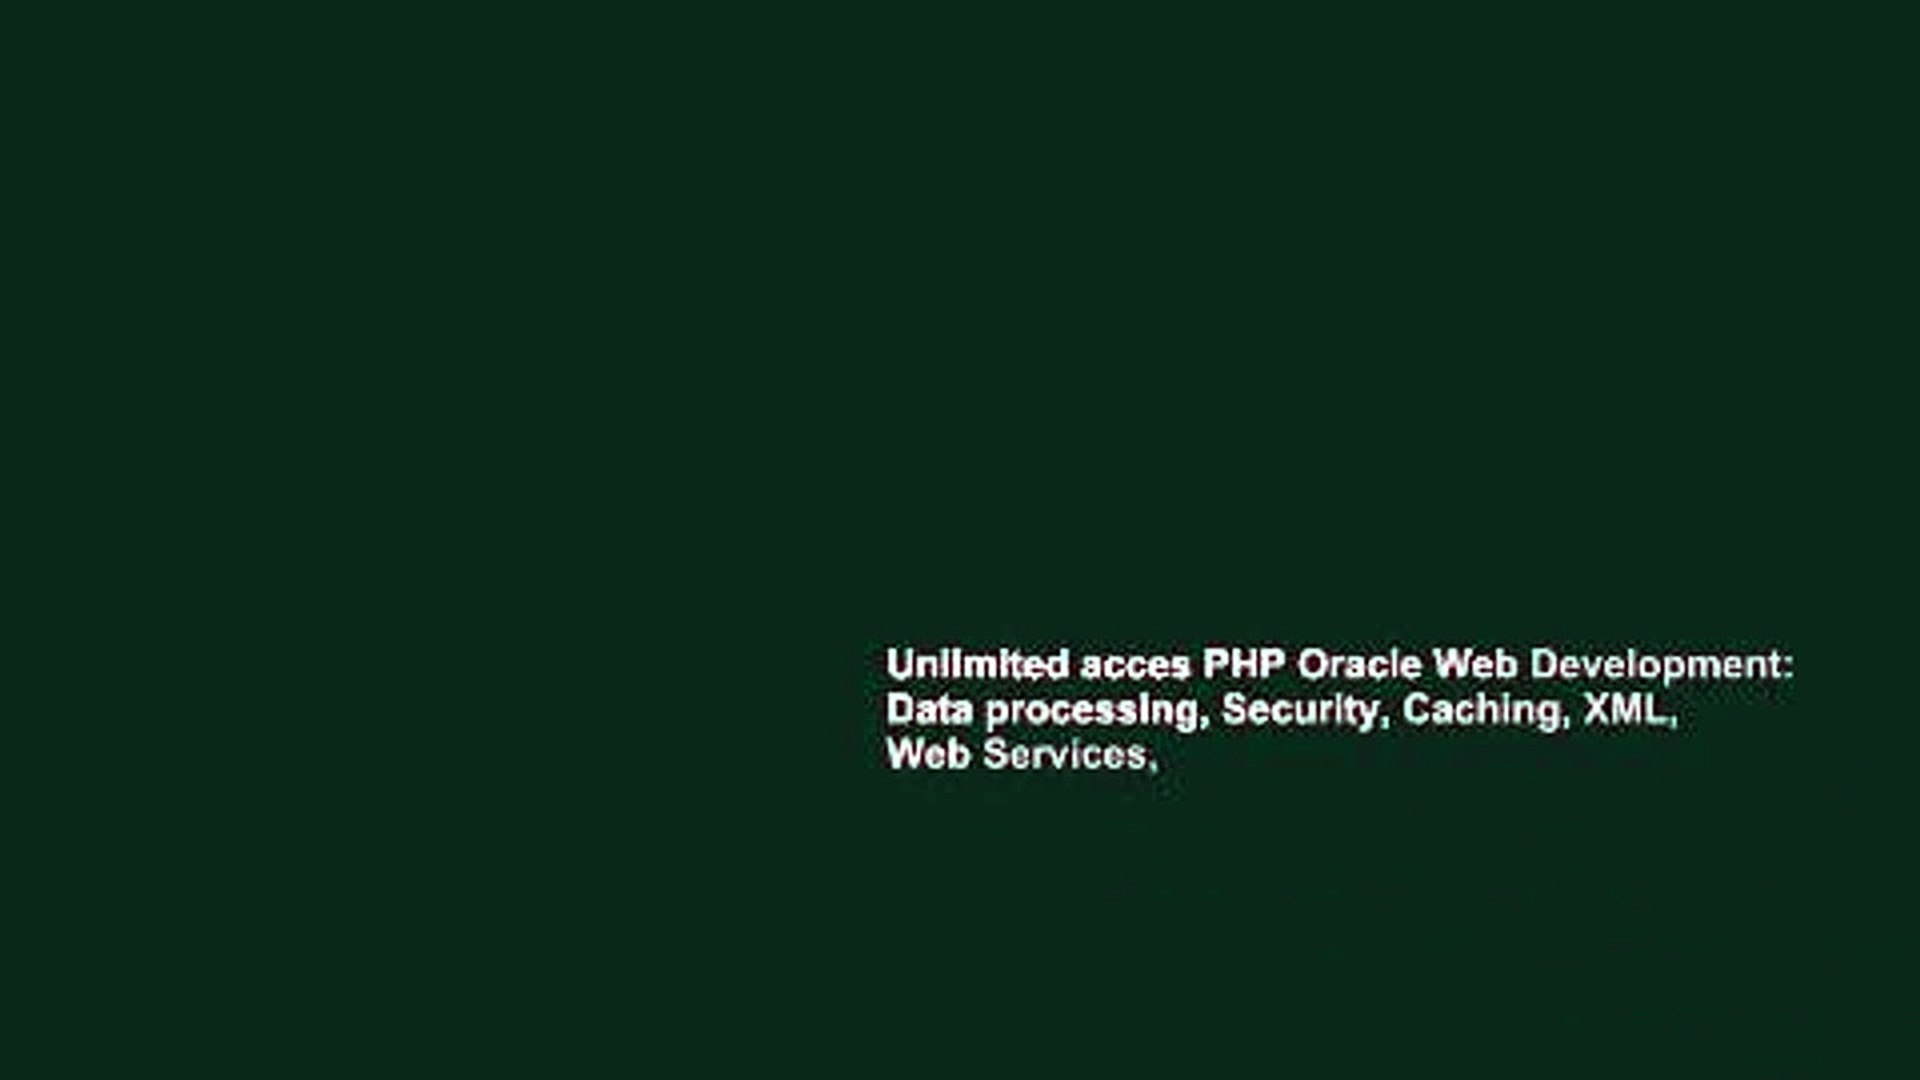 Unlimited acces PHP Oracle Web Development: Data processing, Security, Caching, XML, Web Services,